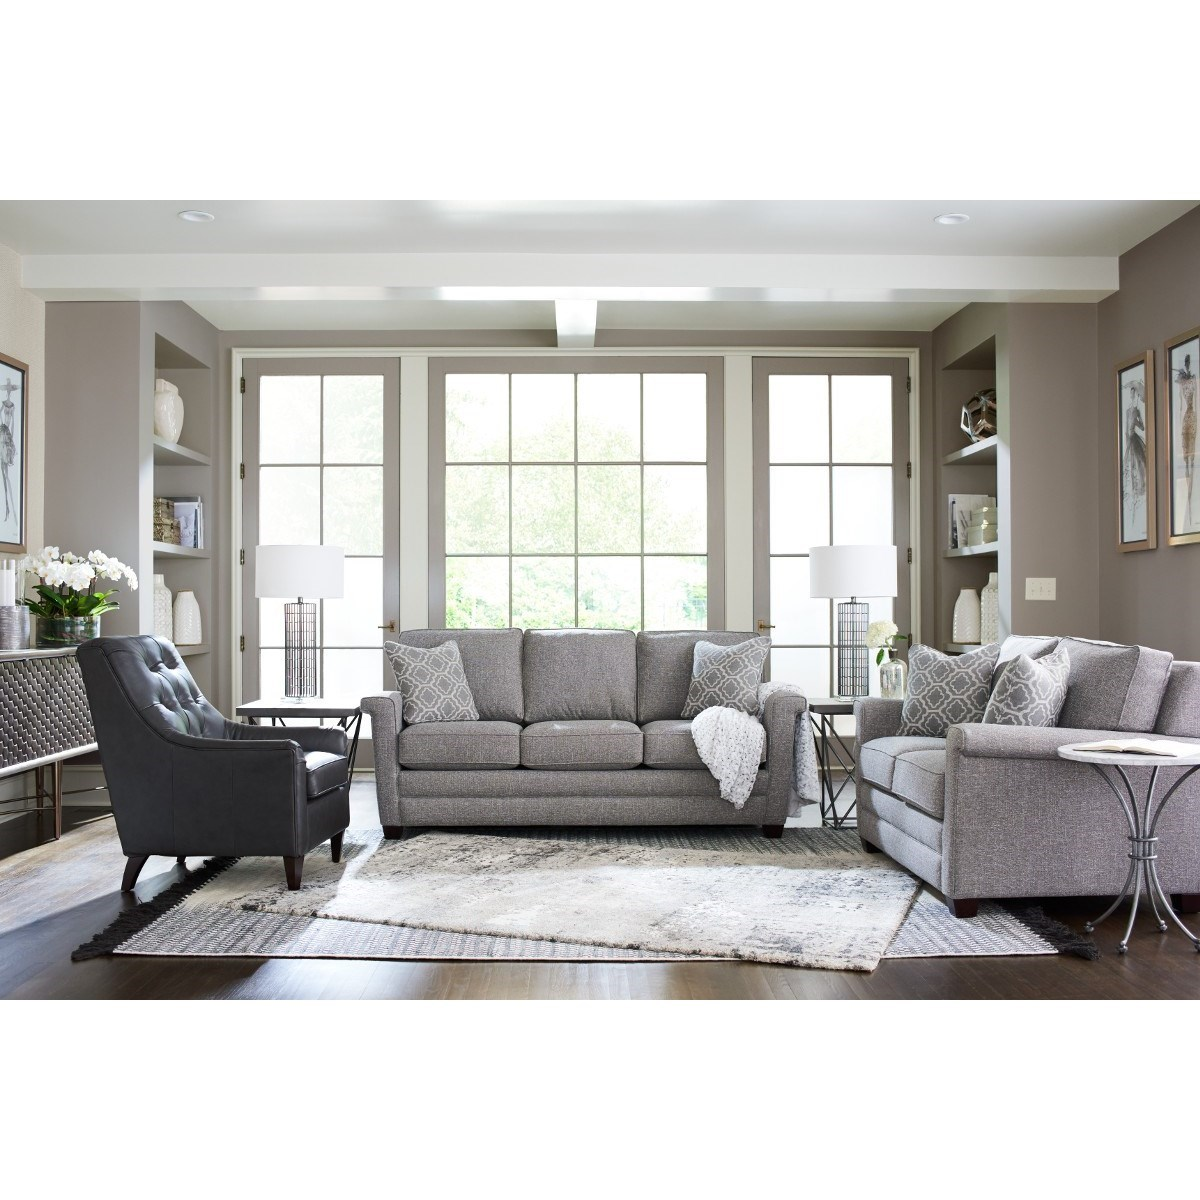 Bexley Living Room Group by La-Z-Boy at Houston's Yuma Furniture